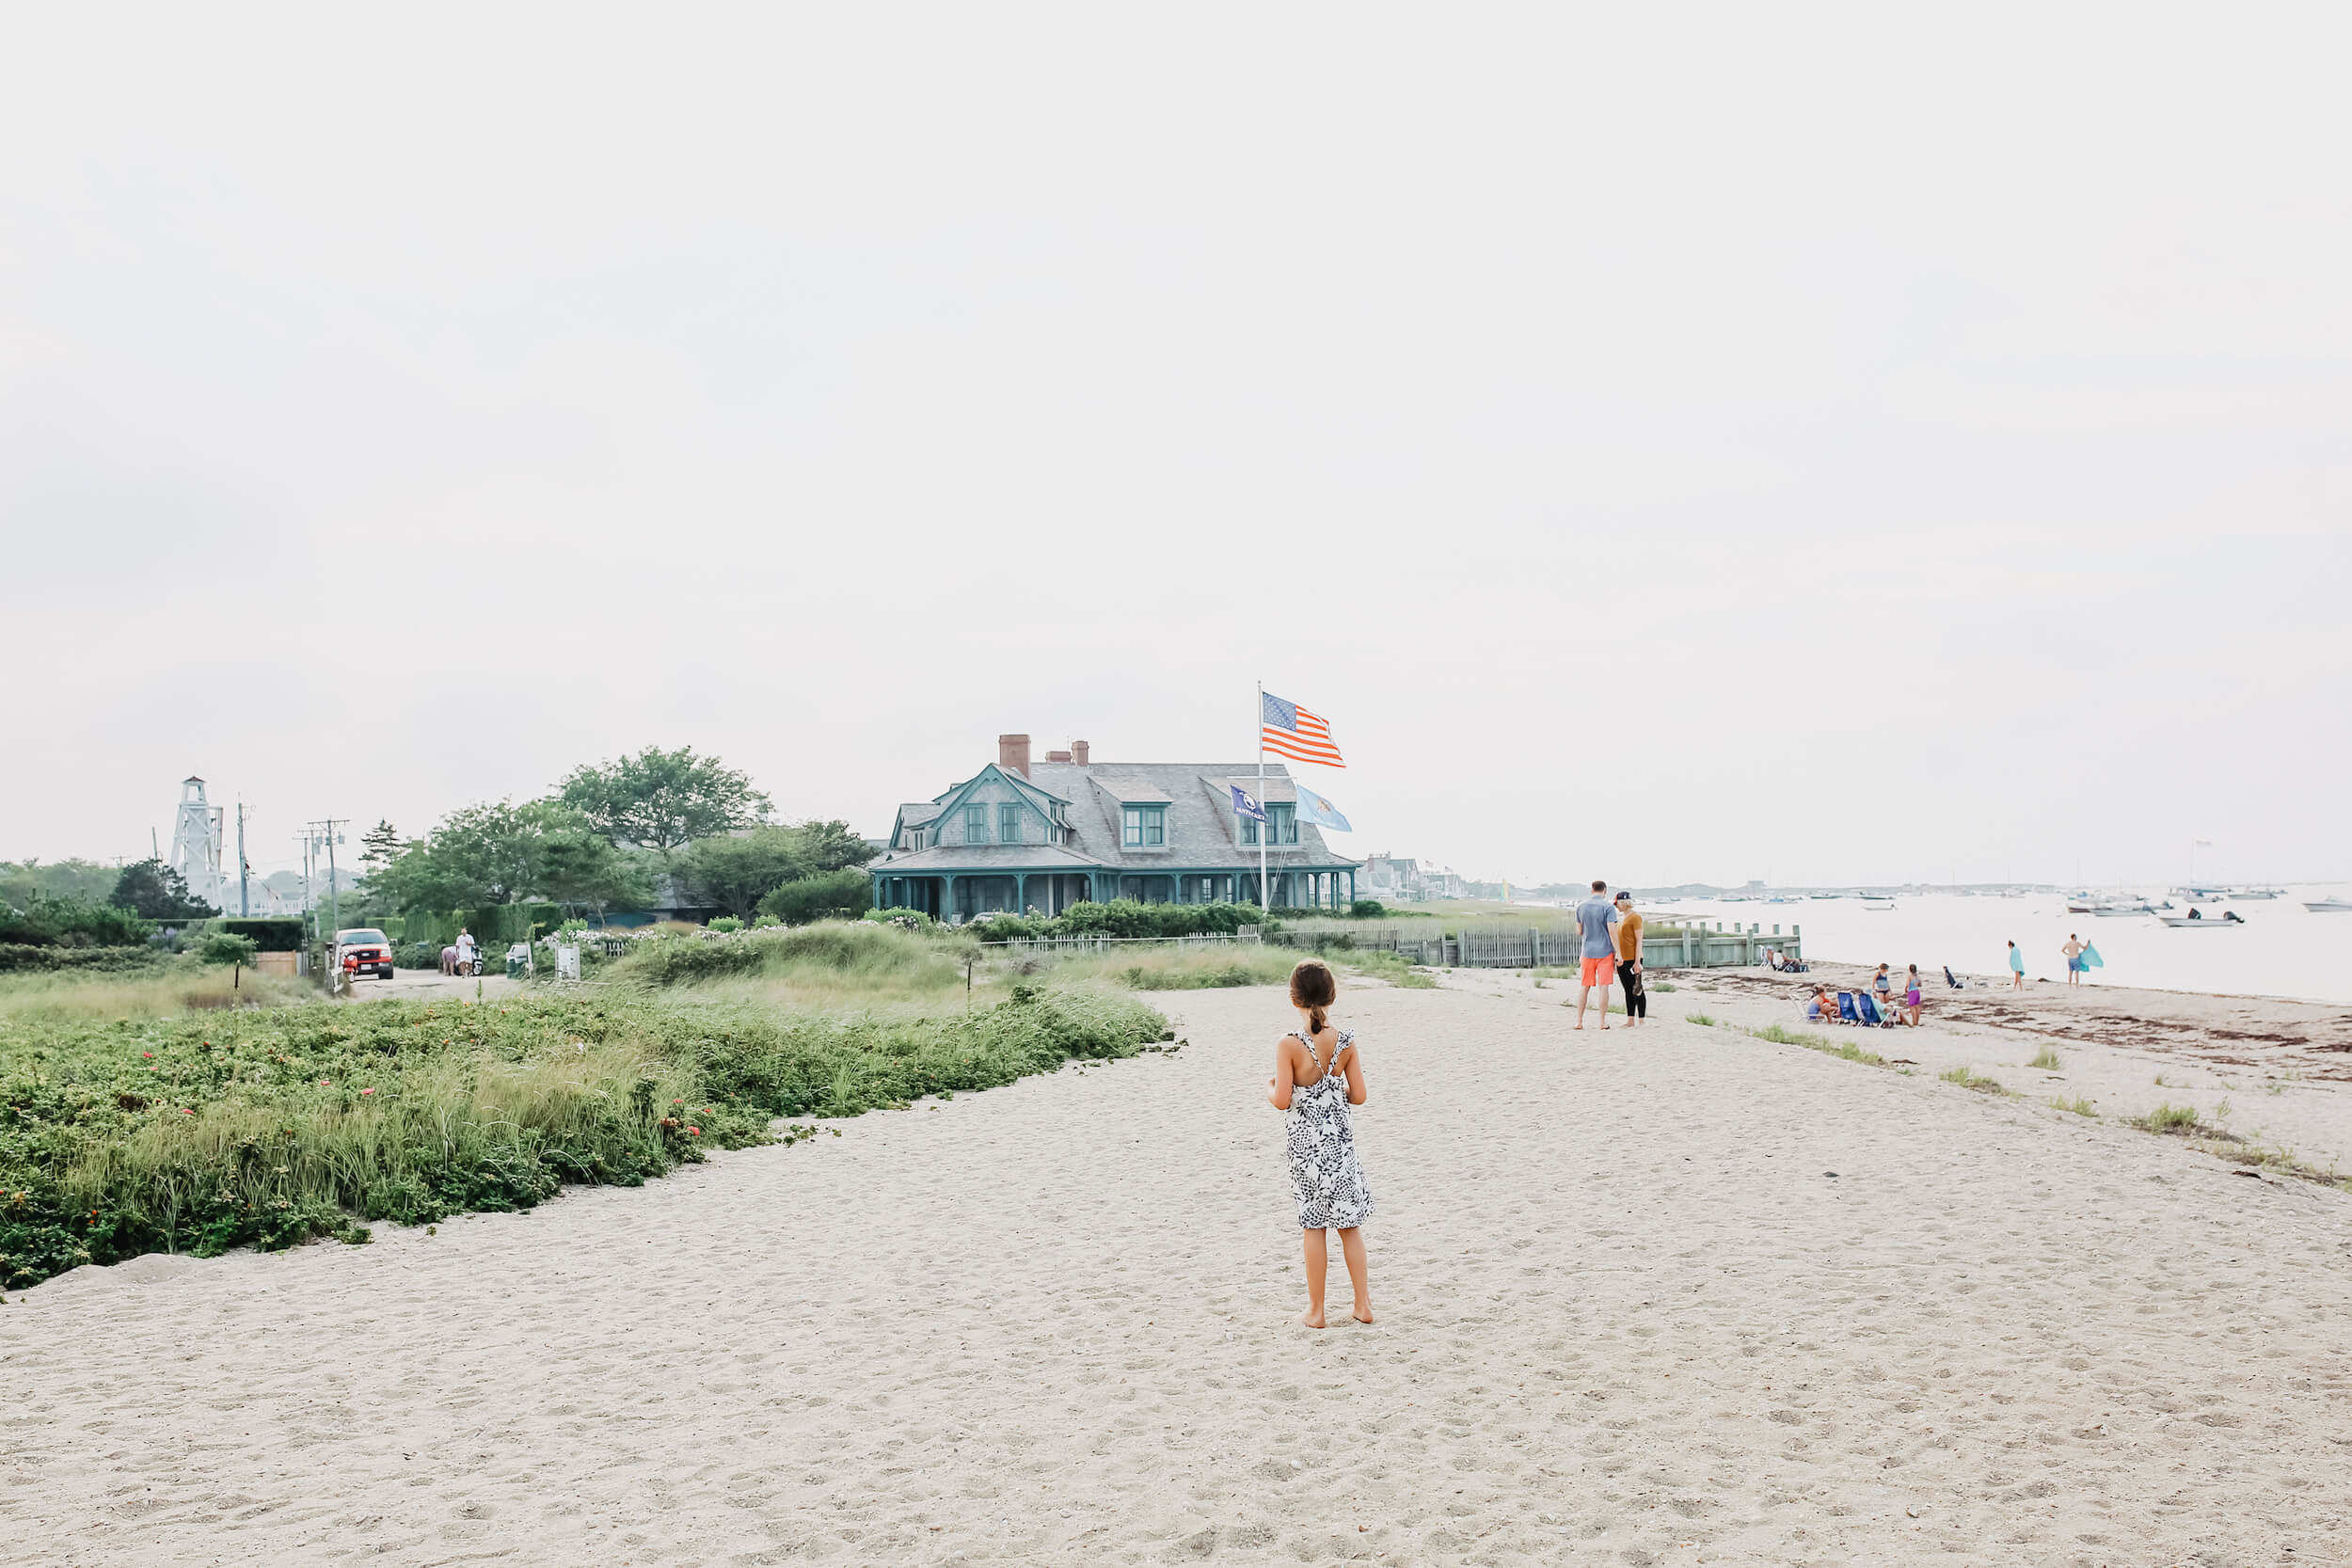 A girl stands on the beach in Nantucket, Massachusetts, USA.